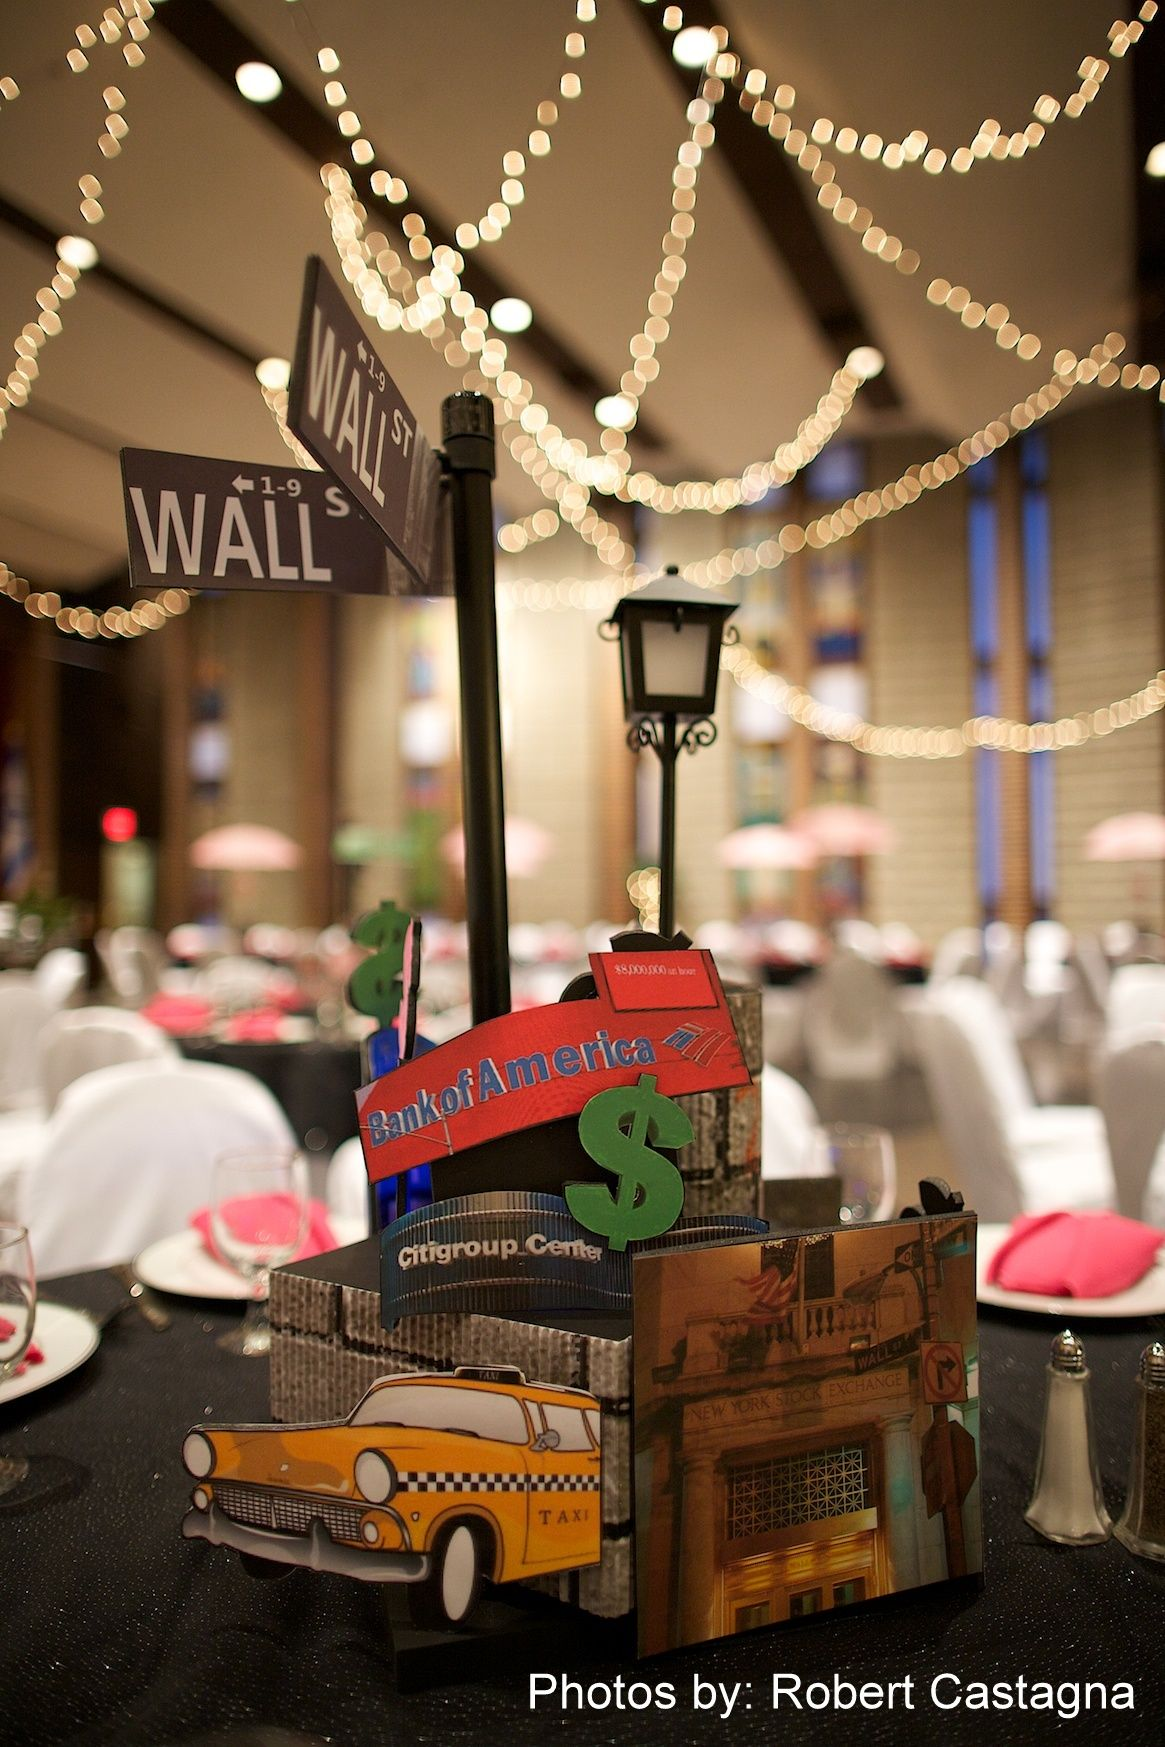 Nyc Themed Wall Street Centerpiece Bat Mitzvah Ri Ma